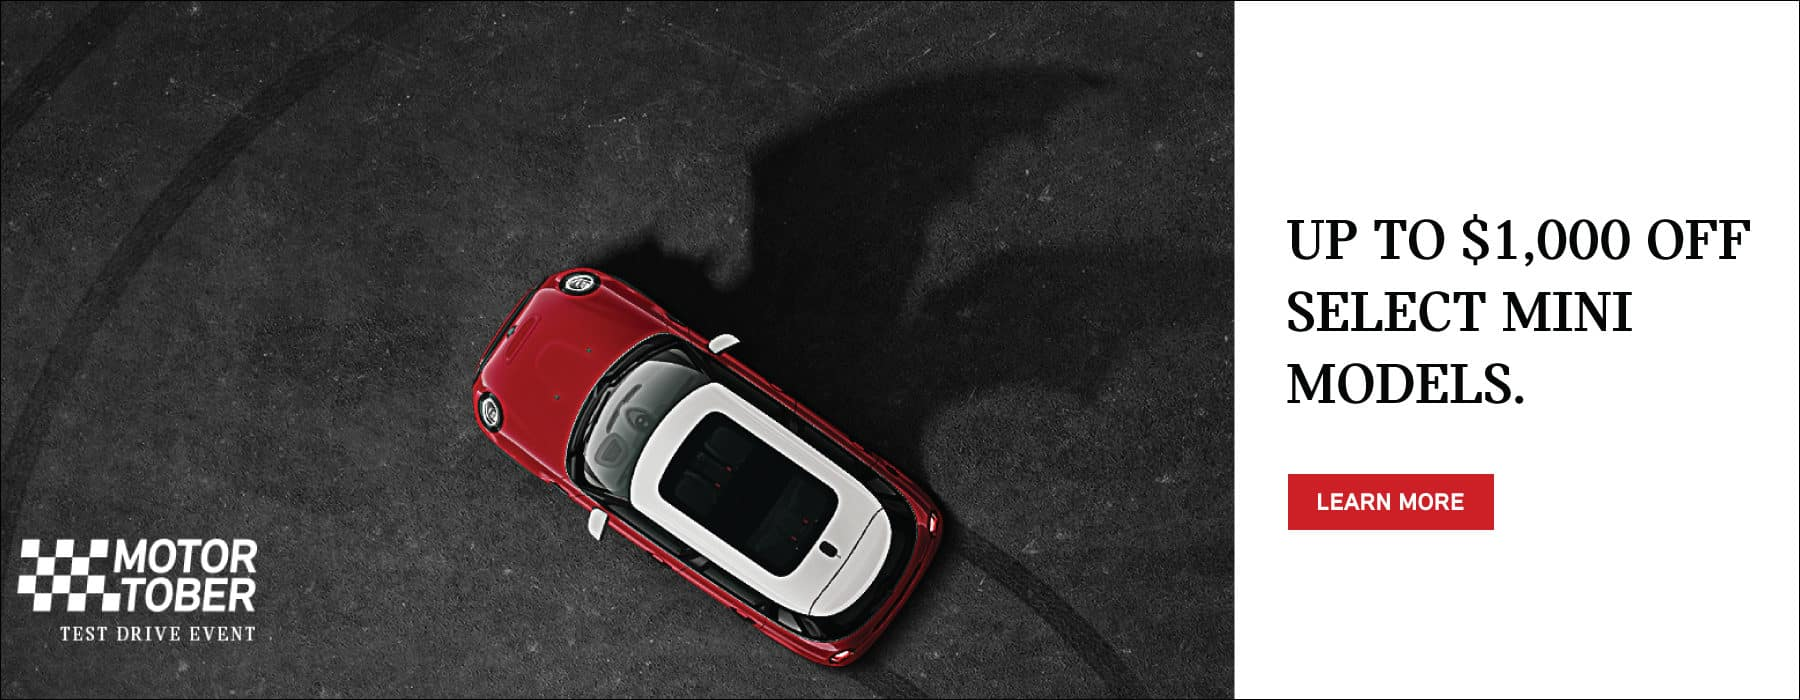 UP TO $1,000 OFF SELECT 2022 MINI MODELS. CLICK TO LEARN MORE.